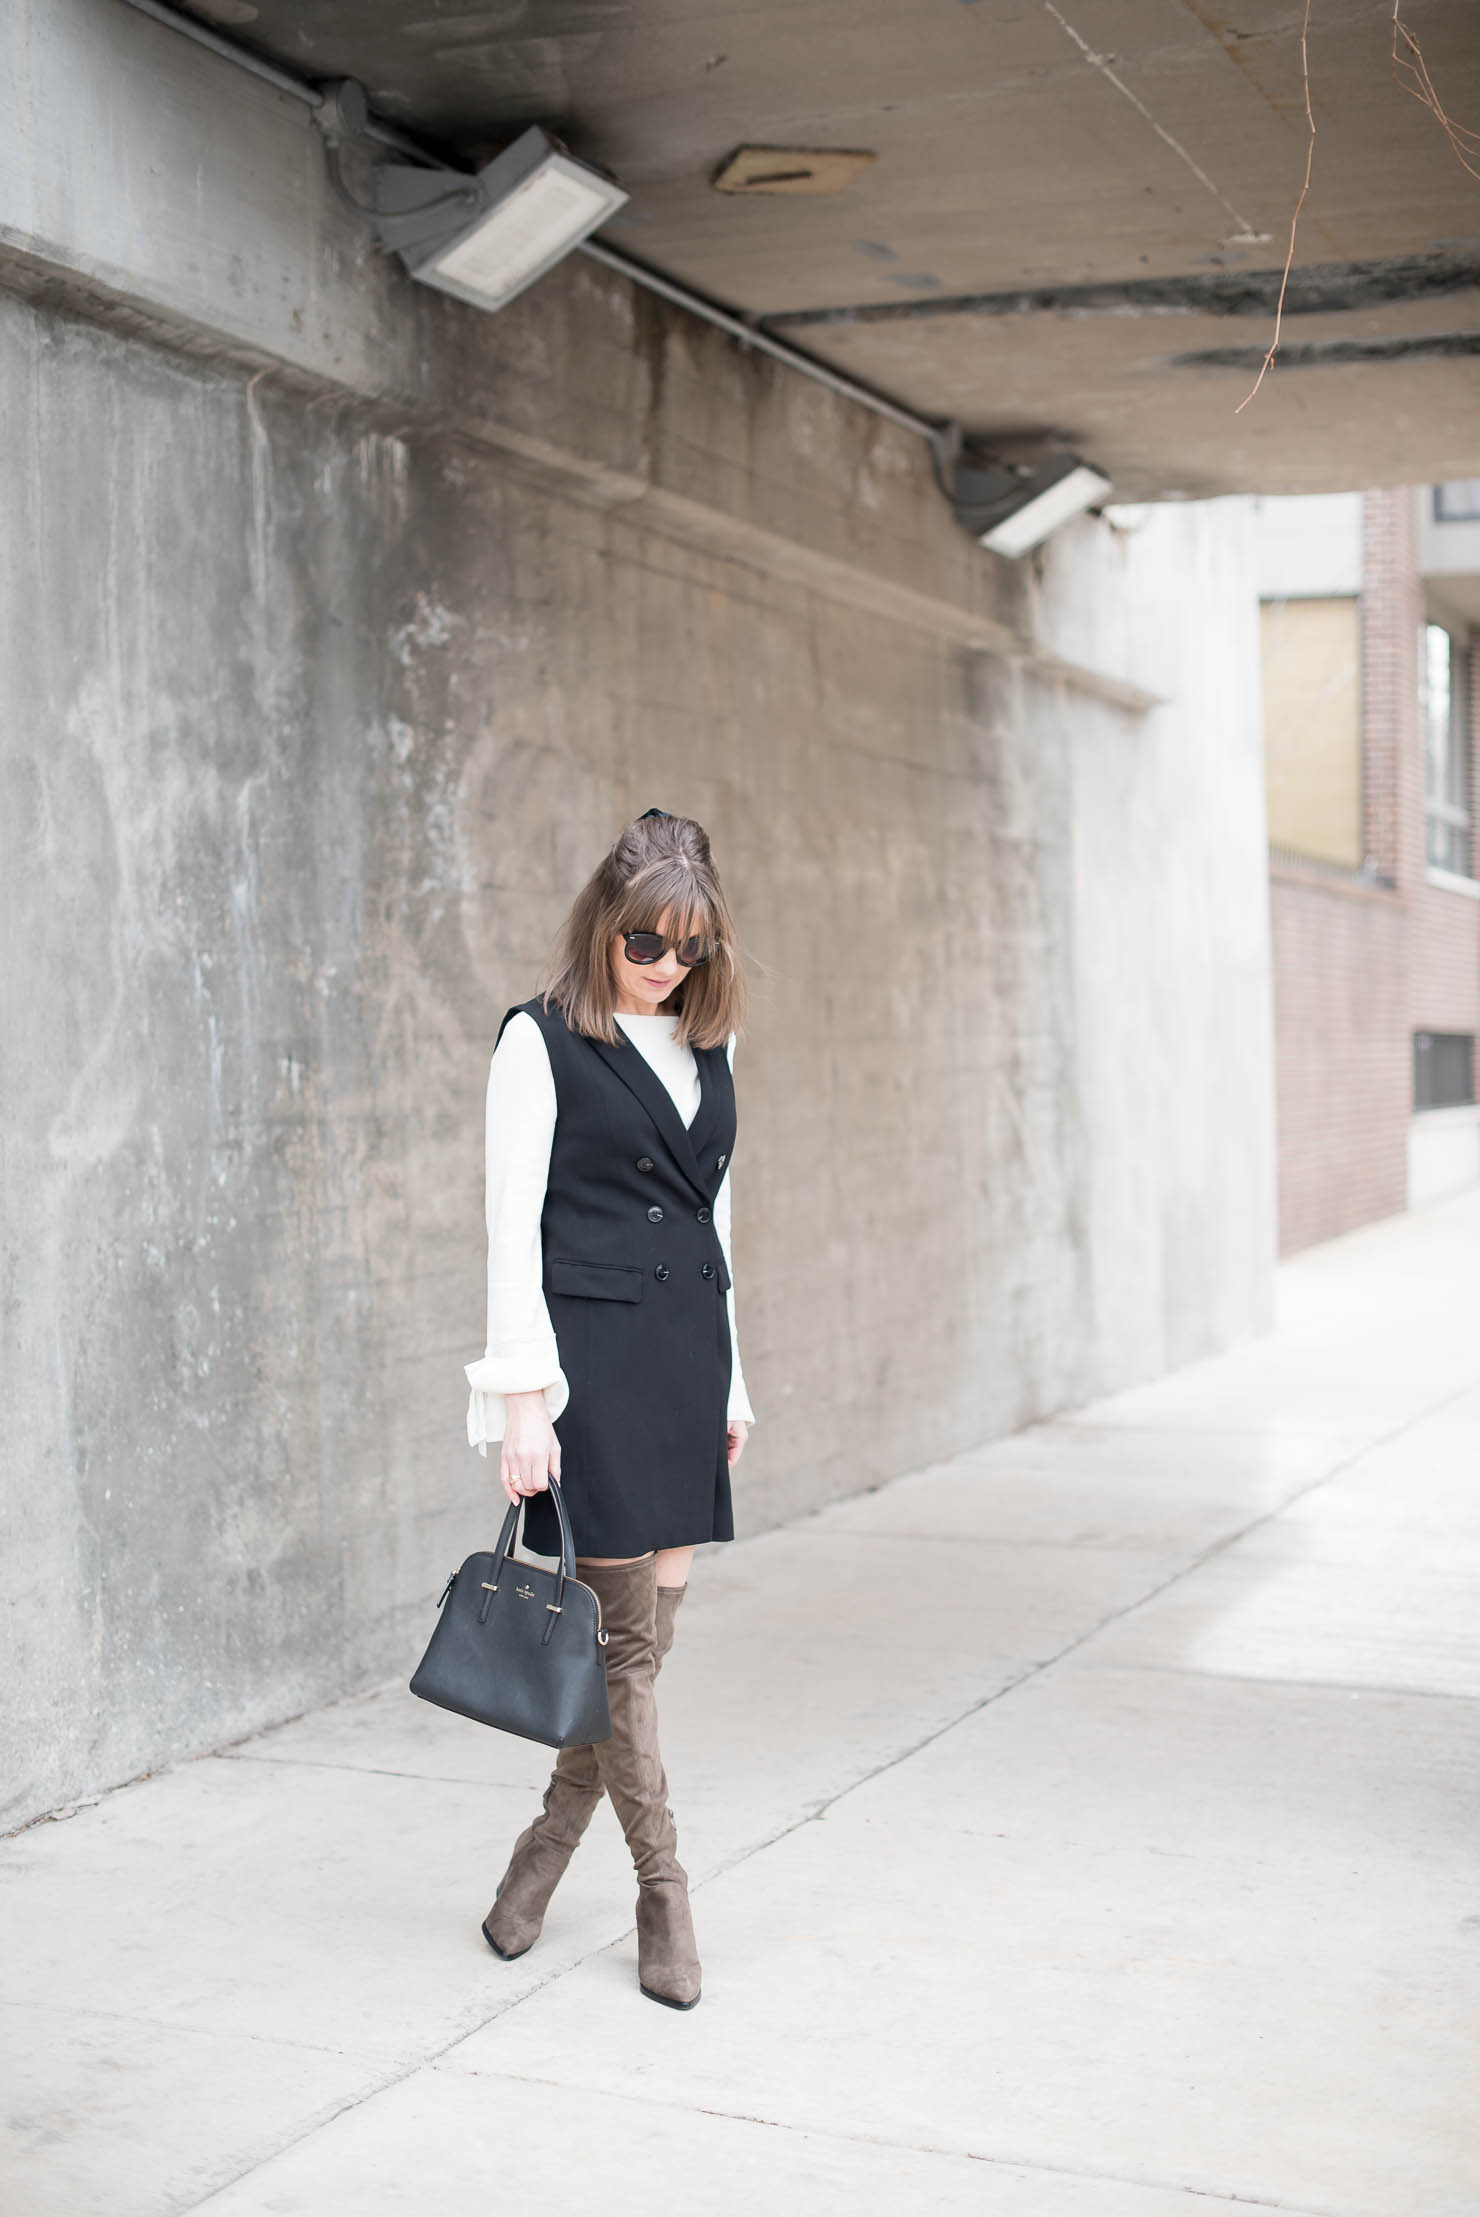 structured-meets-vest-sexy-polished-h&m-double-breasted-sleeveless-trench-vest-bell-sleeves-tie-cuffs-marc-fisher-alinda-boots-best-over-the-knee-boots